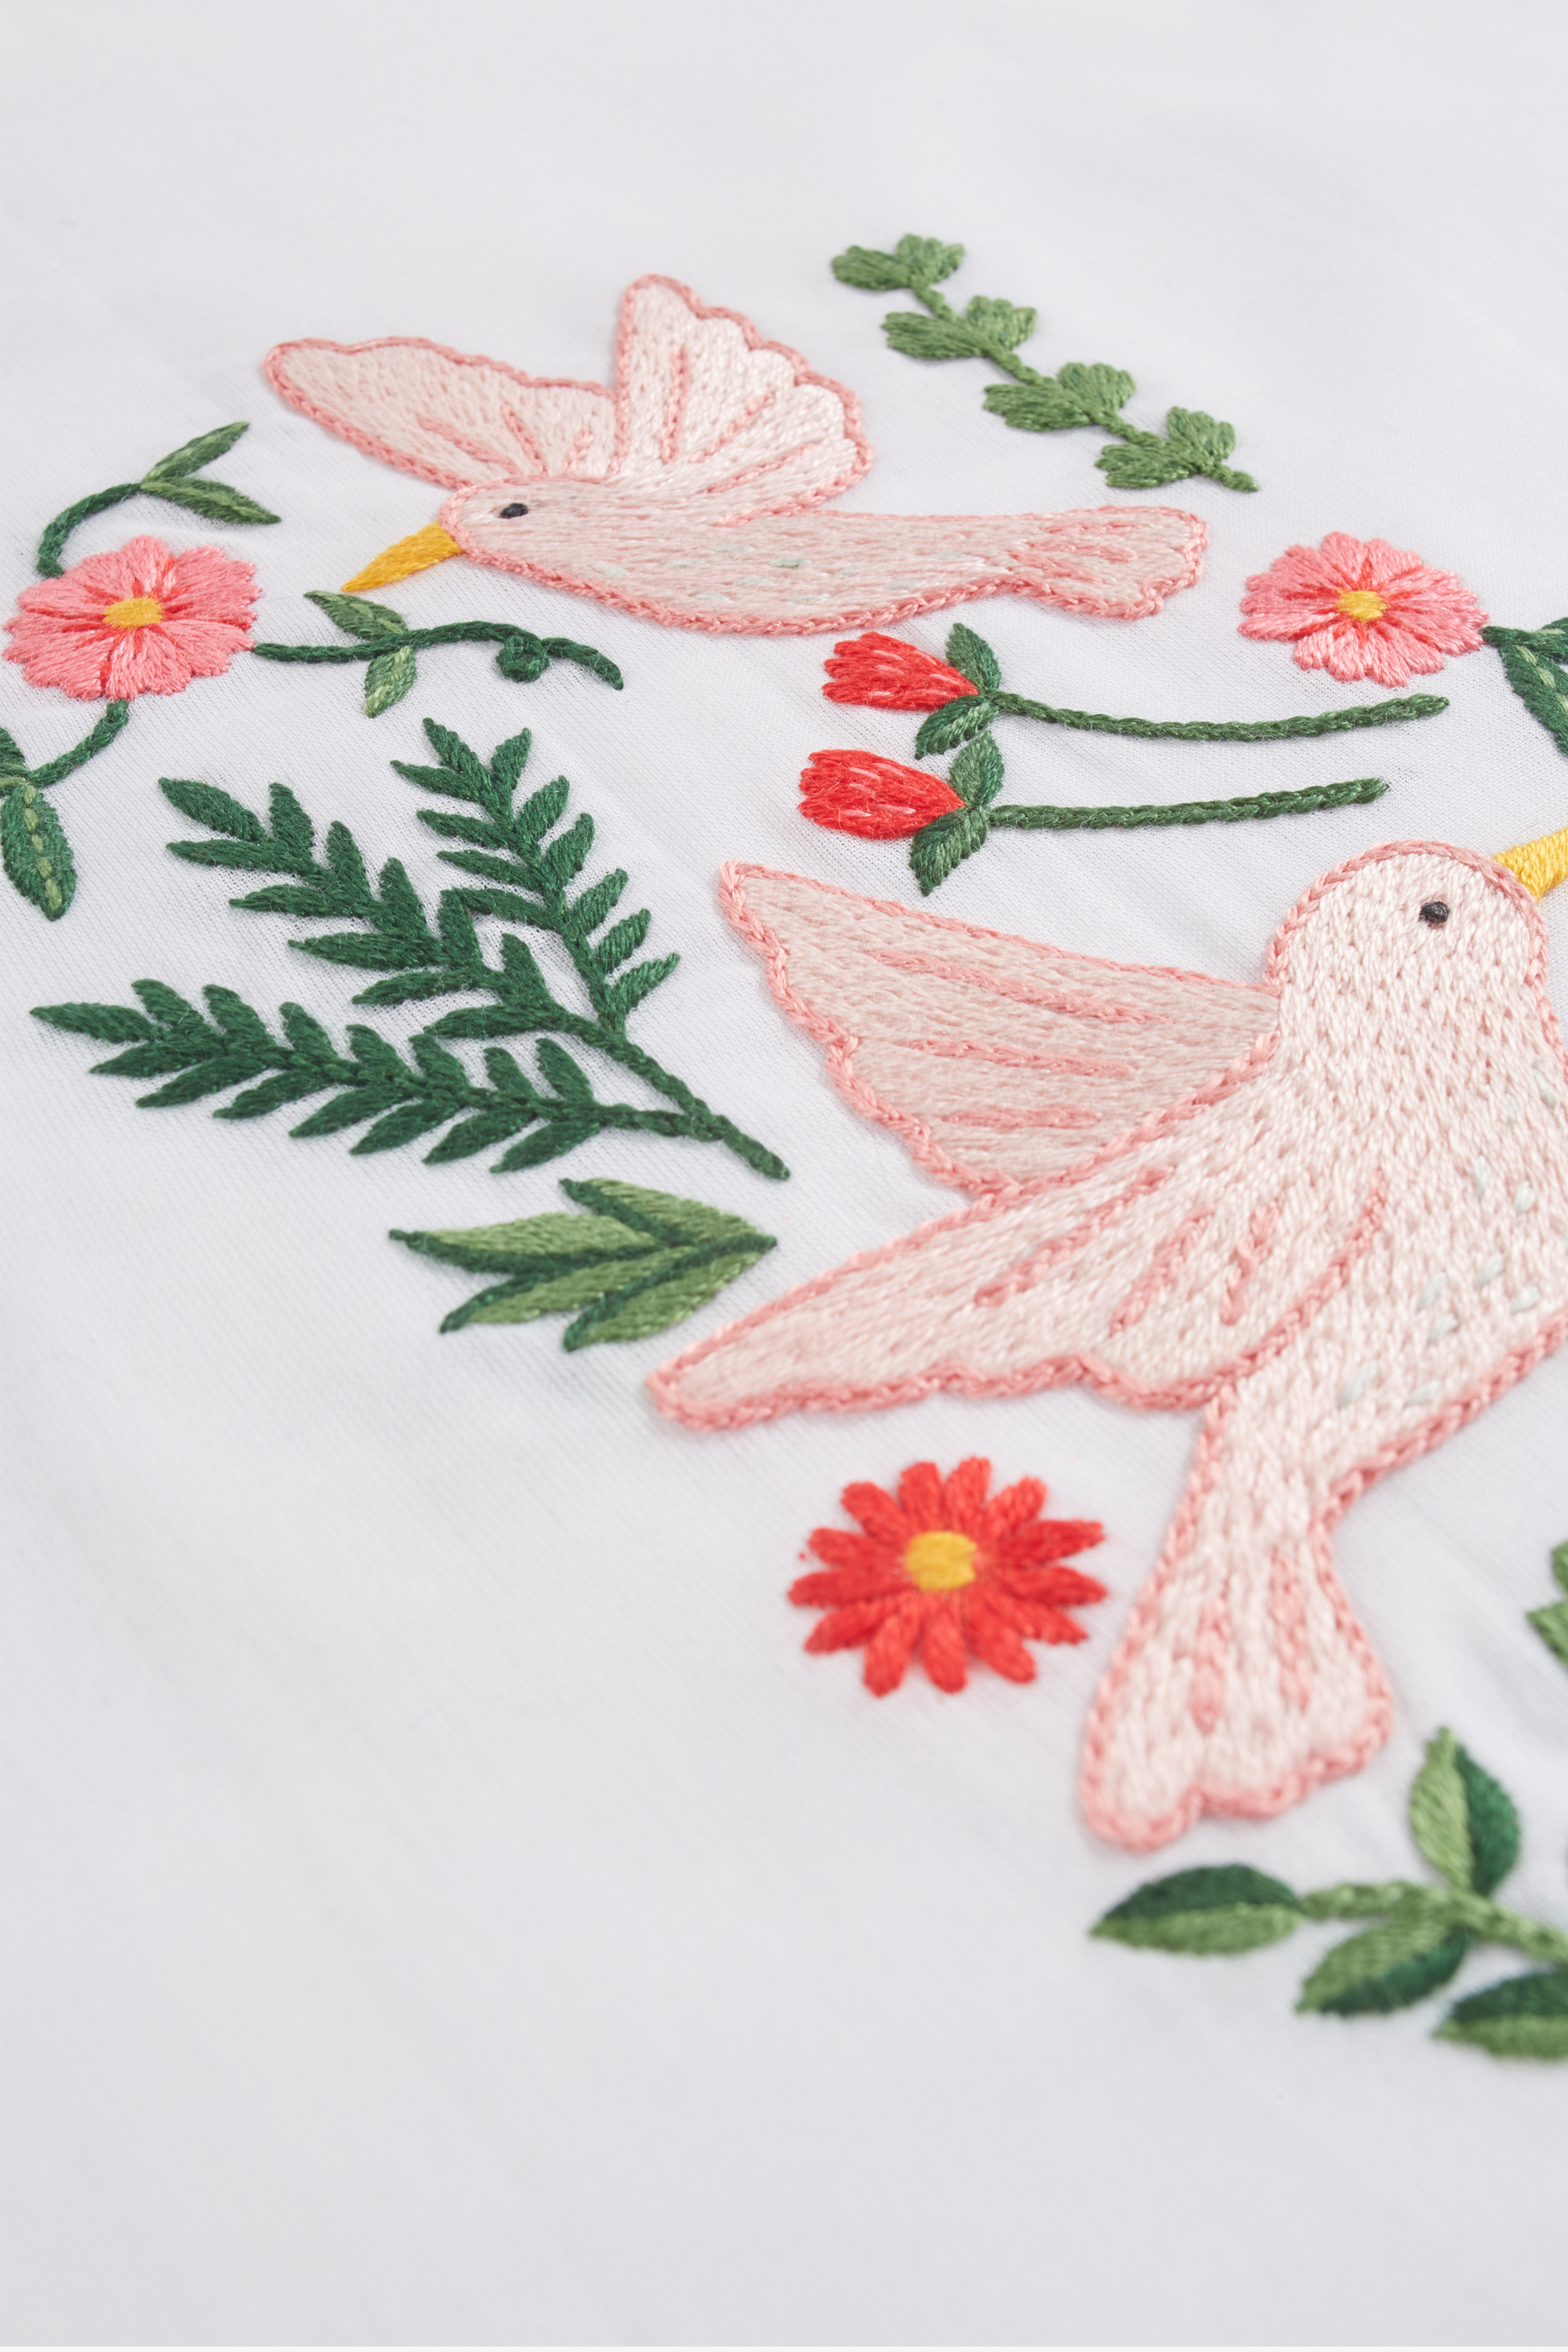 Embroidery Bird Patterns Birds Pattern Free Embroidery Patterns Dmc